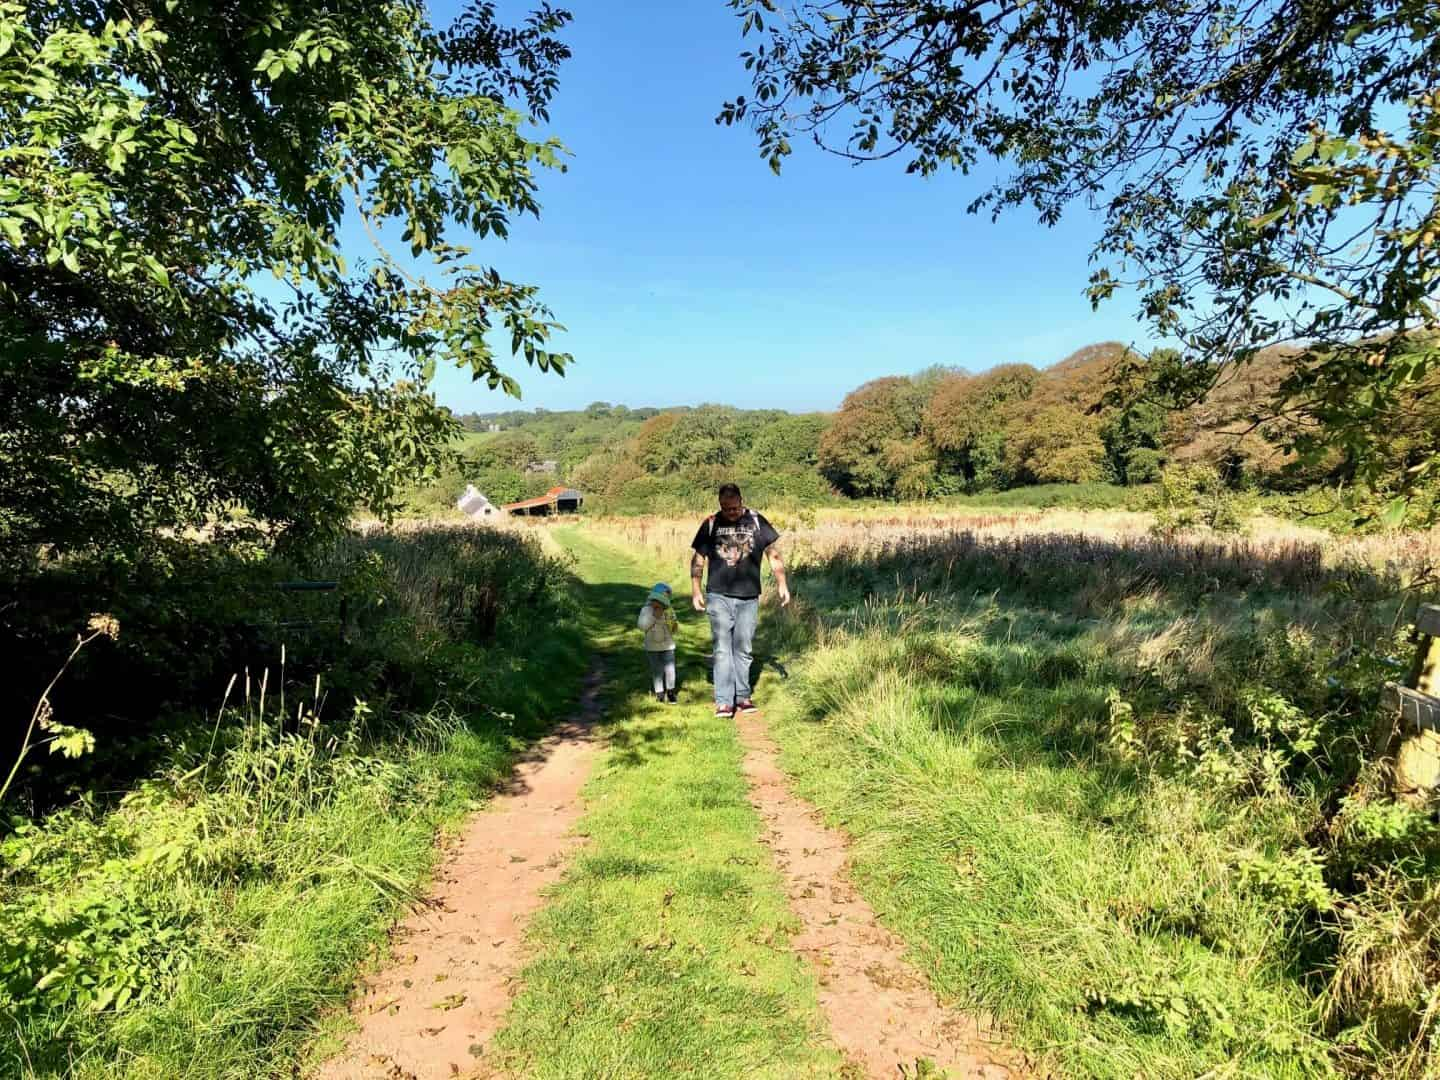 Walking the Yellow Trail at Bluestone during the Bwbach Festival